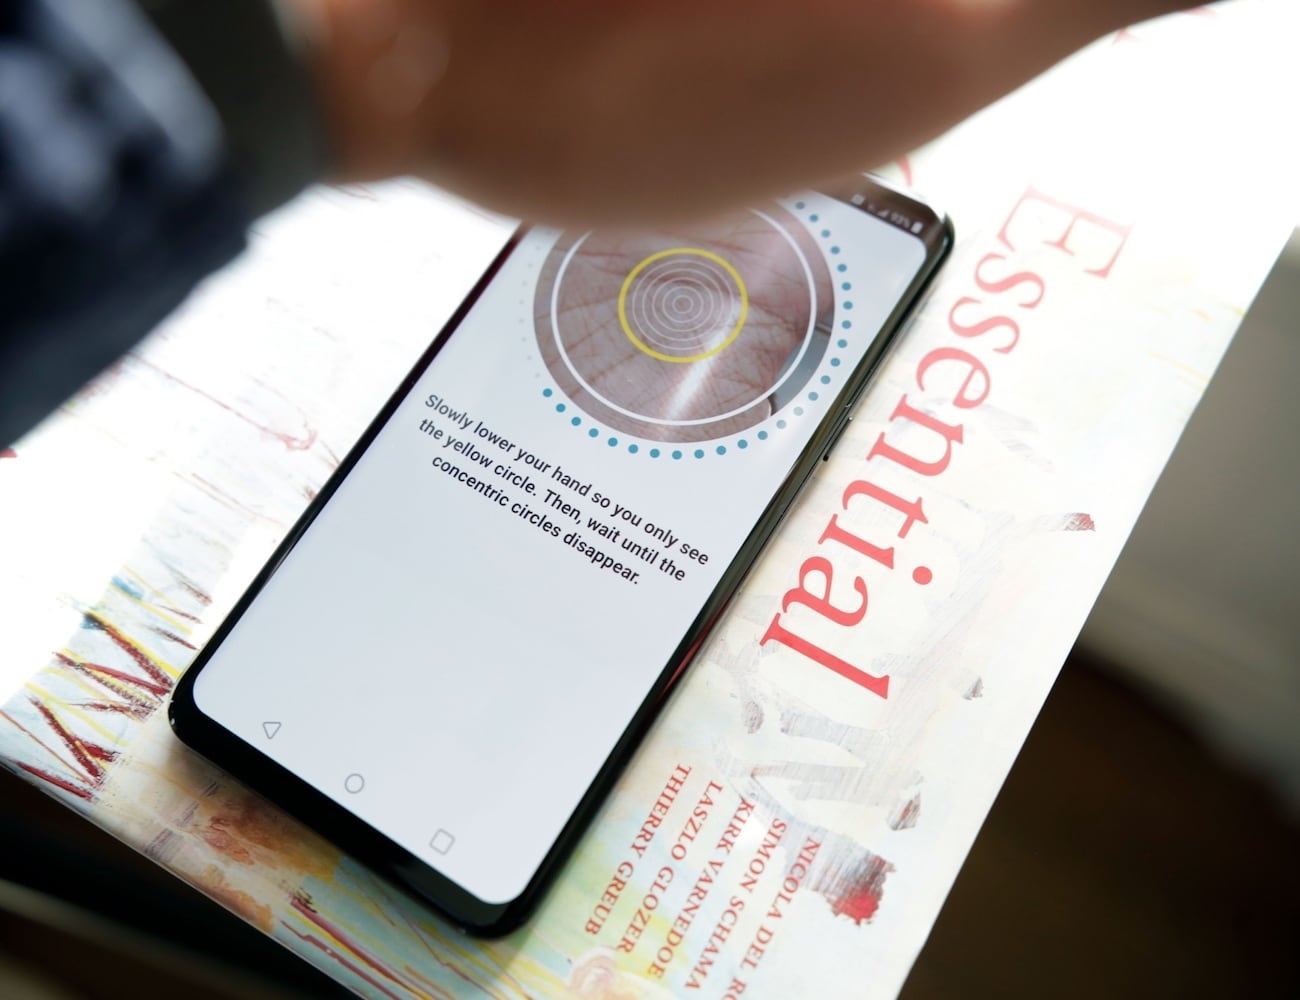 LG G8 ThinQ Palm Authentication Smartphone quickly unlocks your device